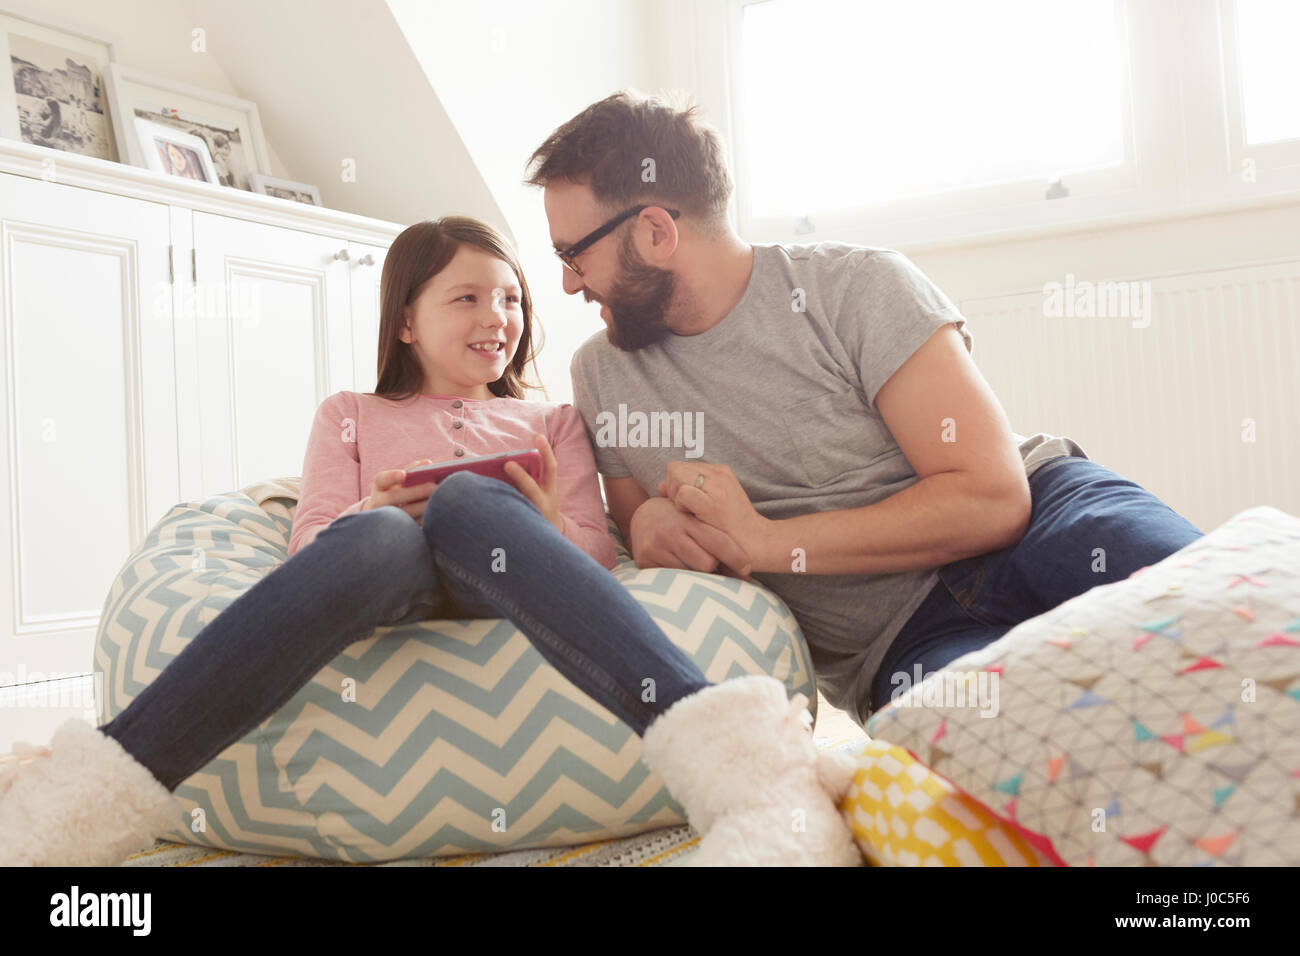 Mid adult man and daughter reclining on beanbag chair - Stock Image